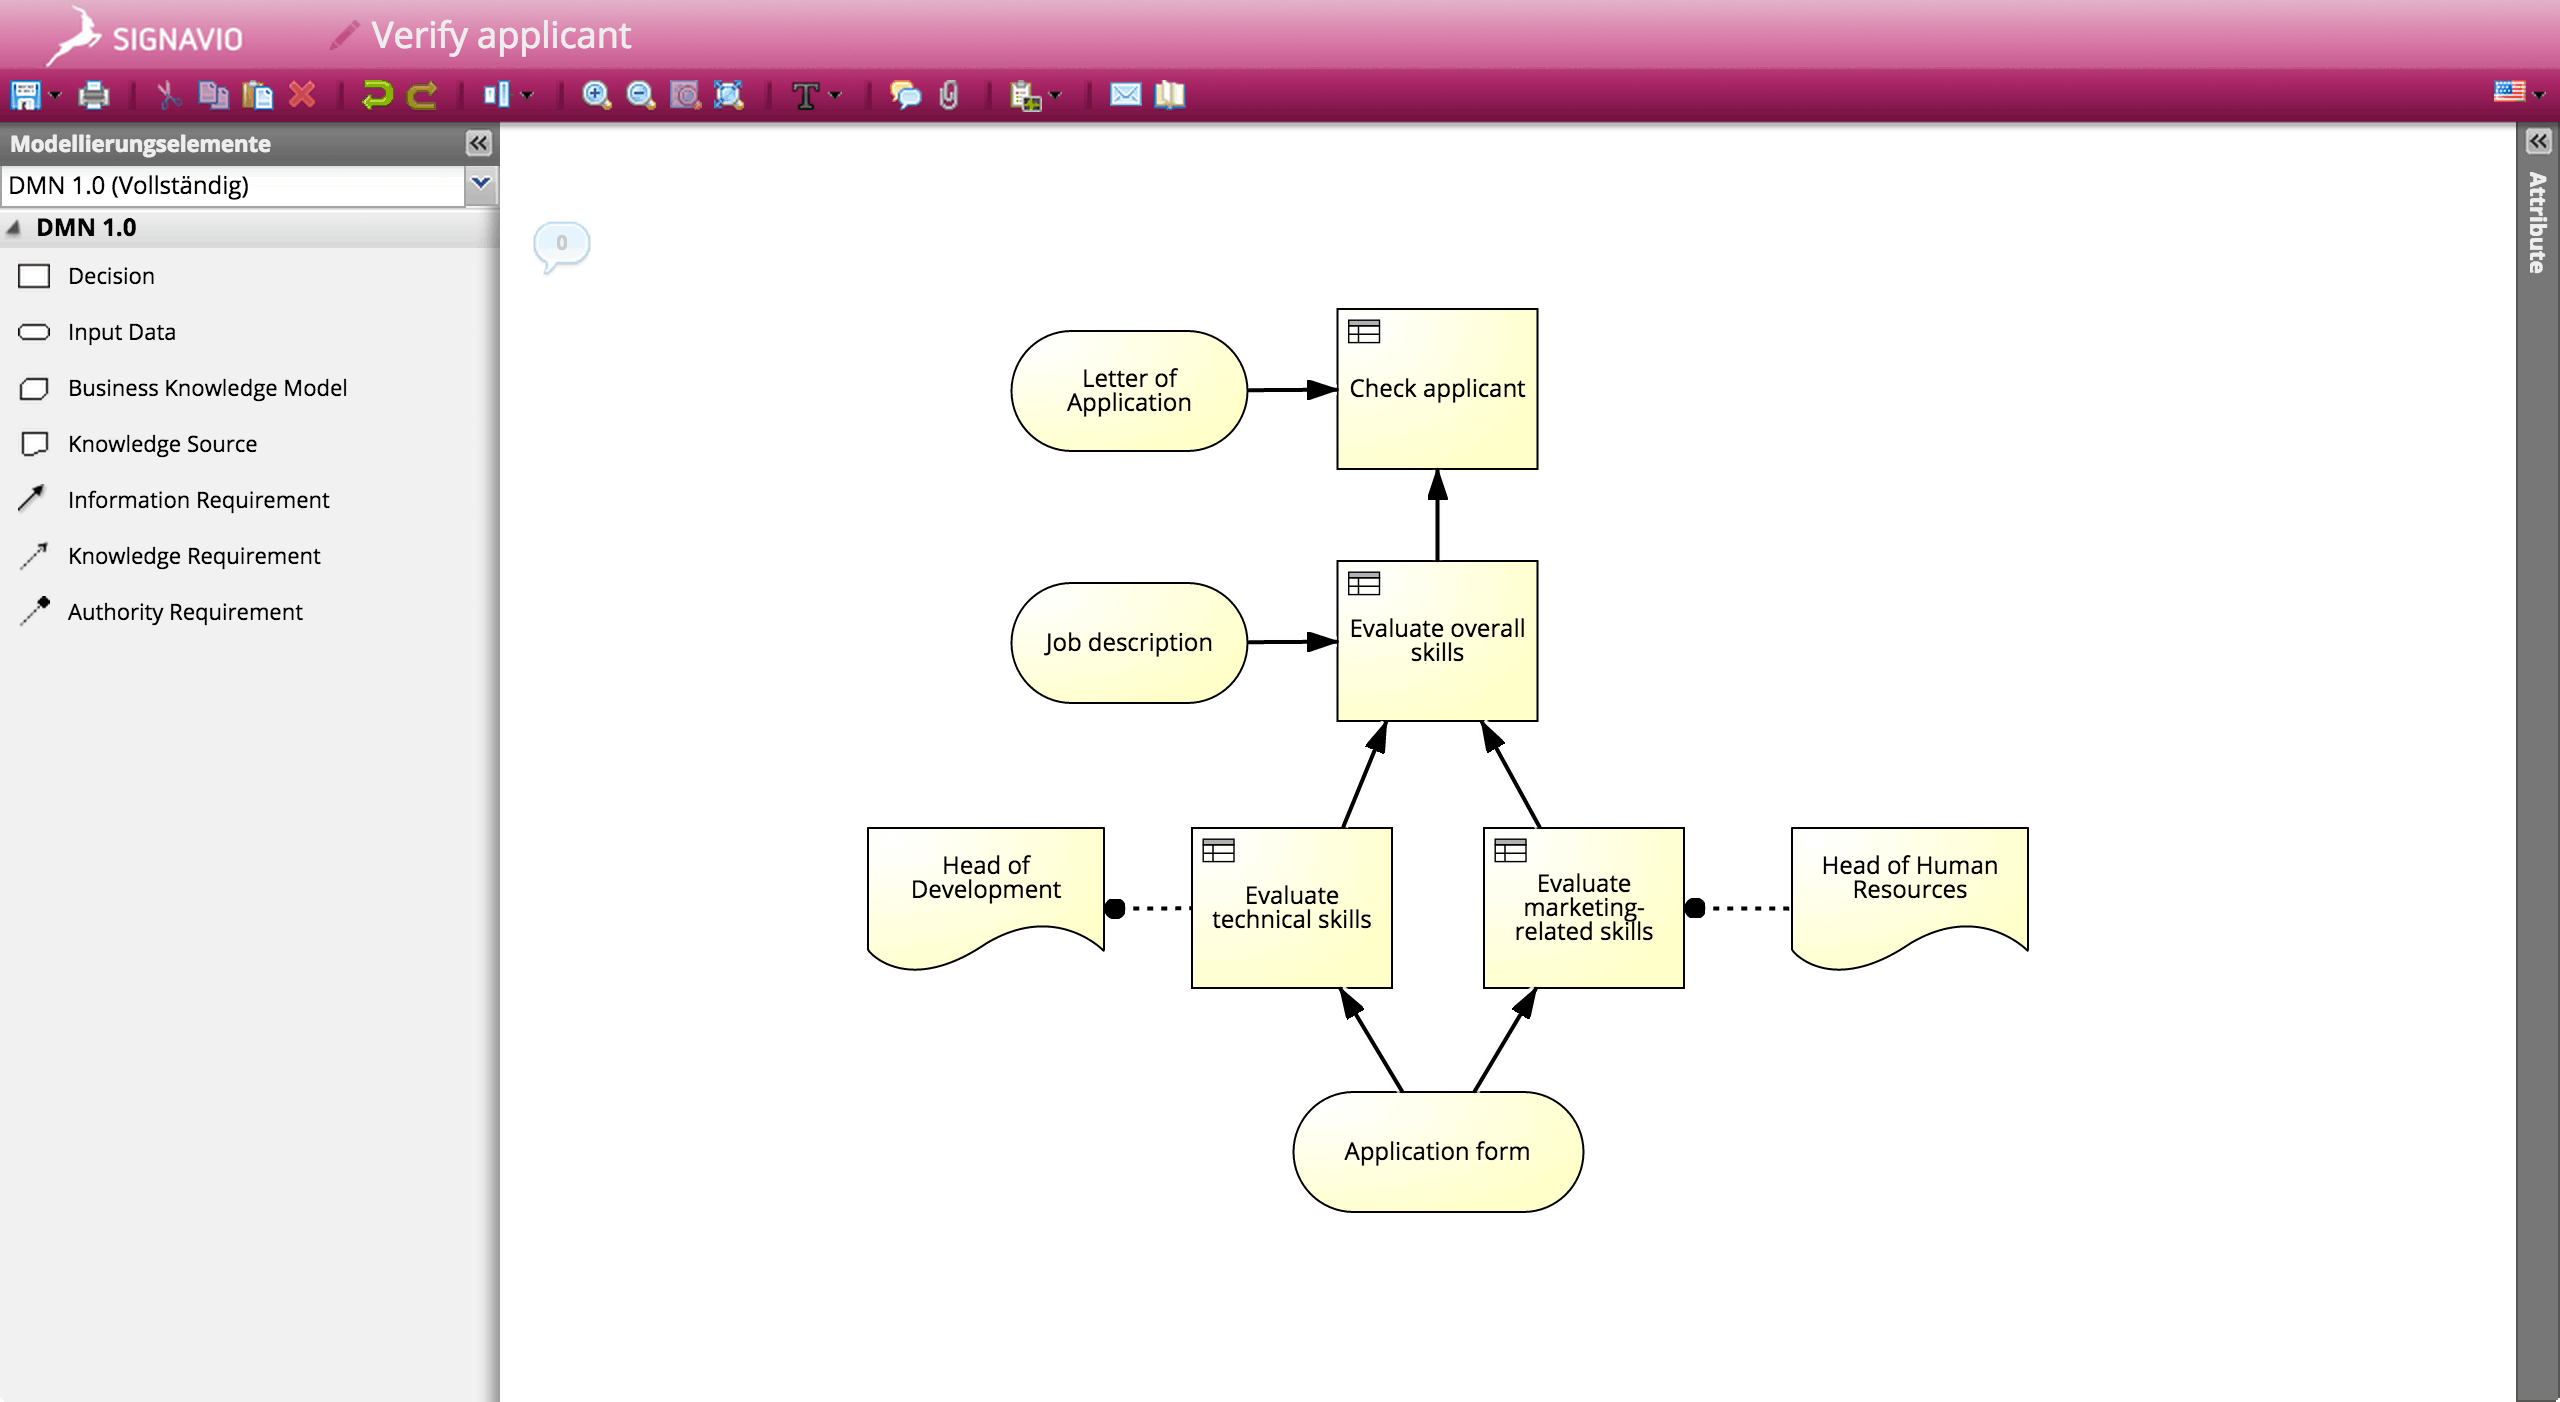 Decision Modeling with DMN 1.0